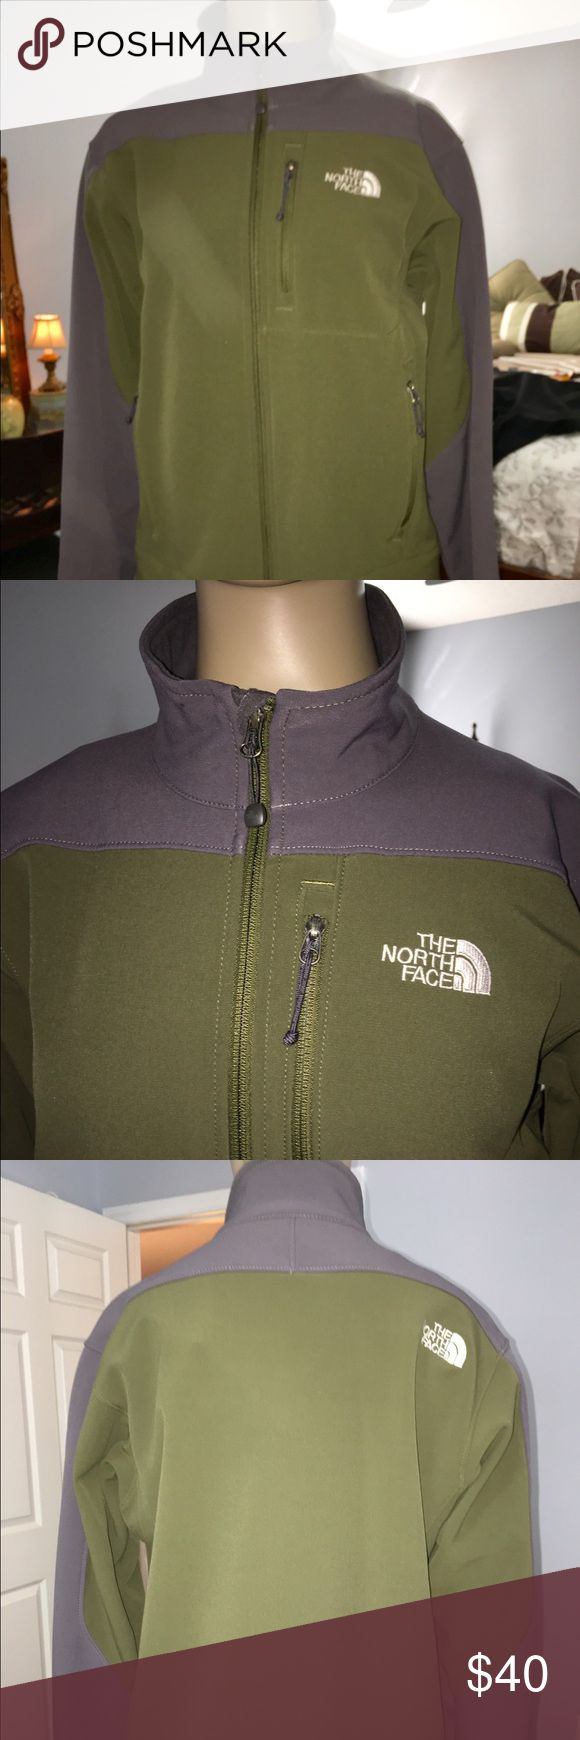 THE NORTH FACE LADIES JACKET THE NORTH FACE ARMY GREEN N GREY JACKET WITH ZIPPER FRONT N CHEST POCKETS WITH VELCRO SLEEVES EXCELLENT CONDITION LADIES SIZE S/P The North Face Jackets & Coats